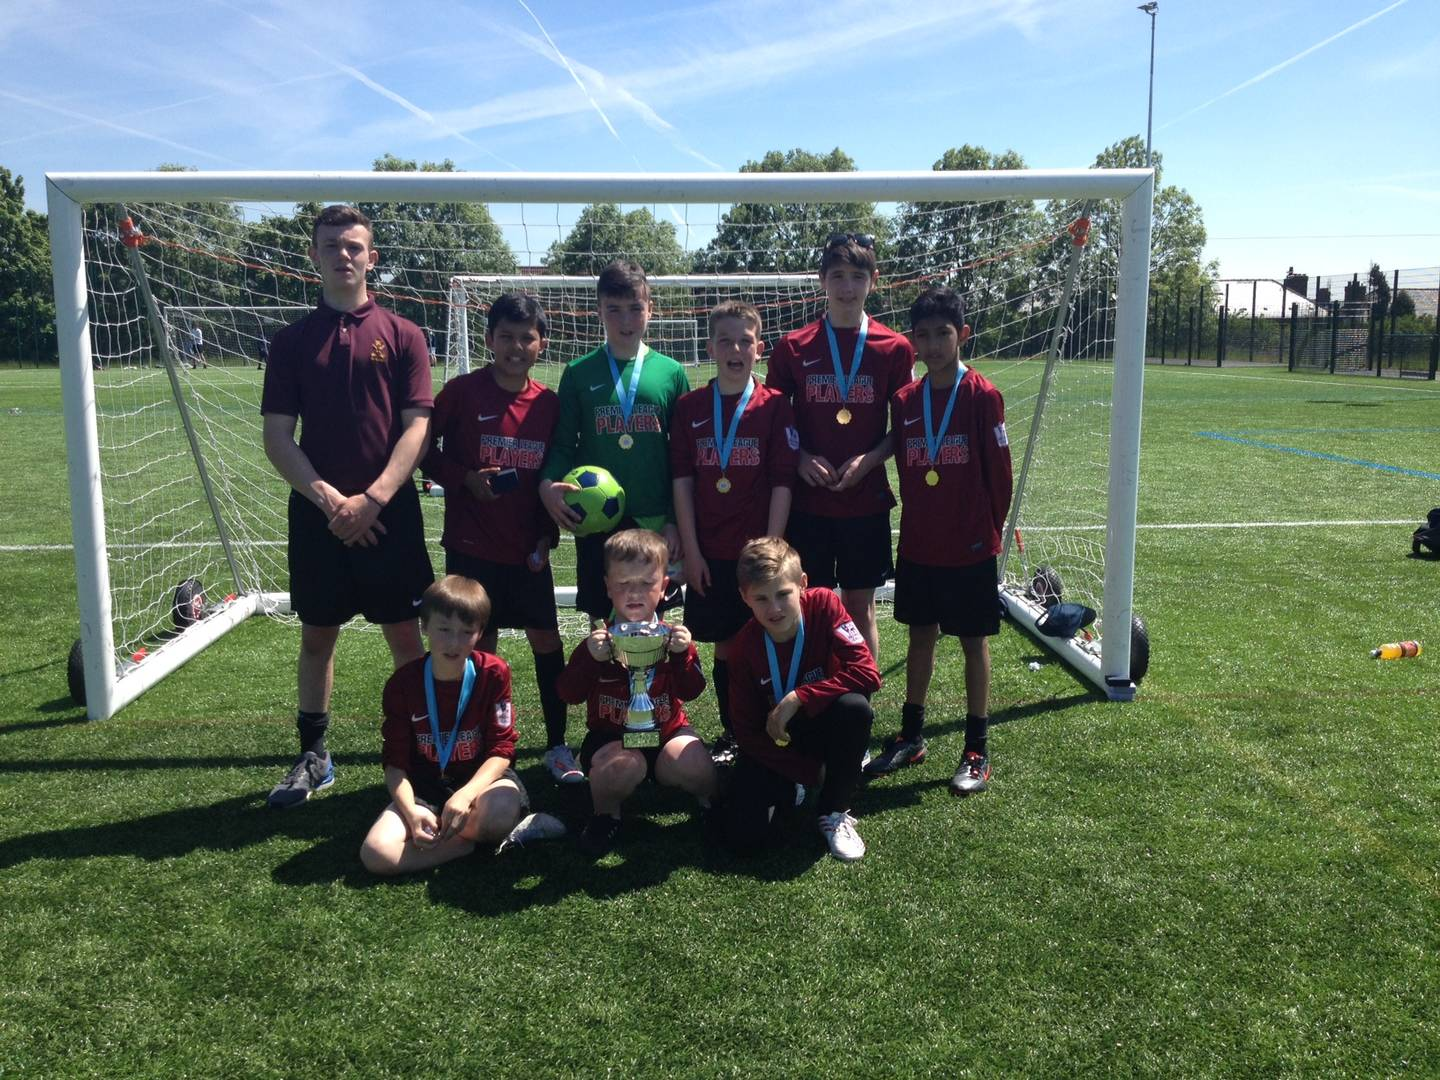 Asa and his football team on the pitch with their league trophy